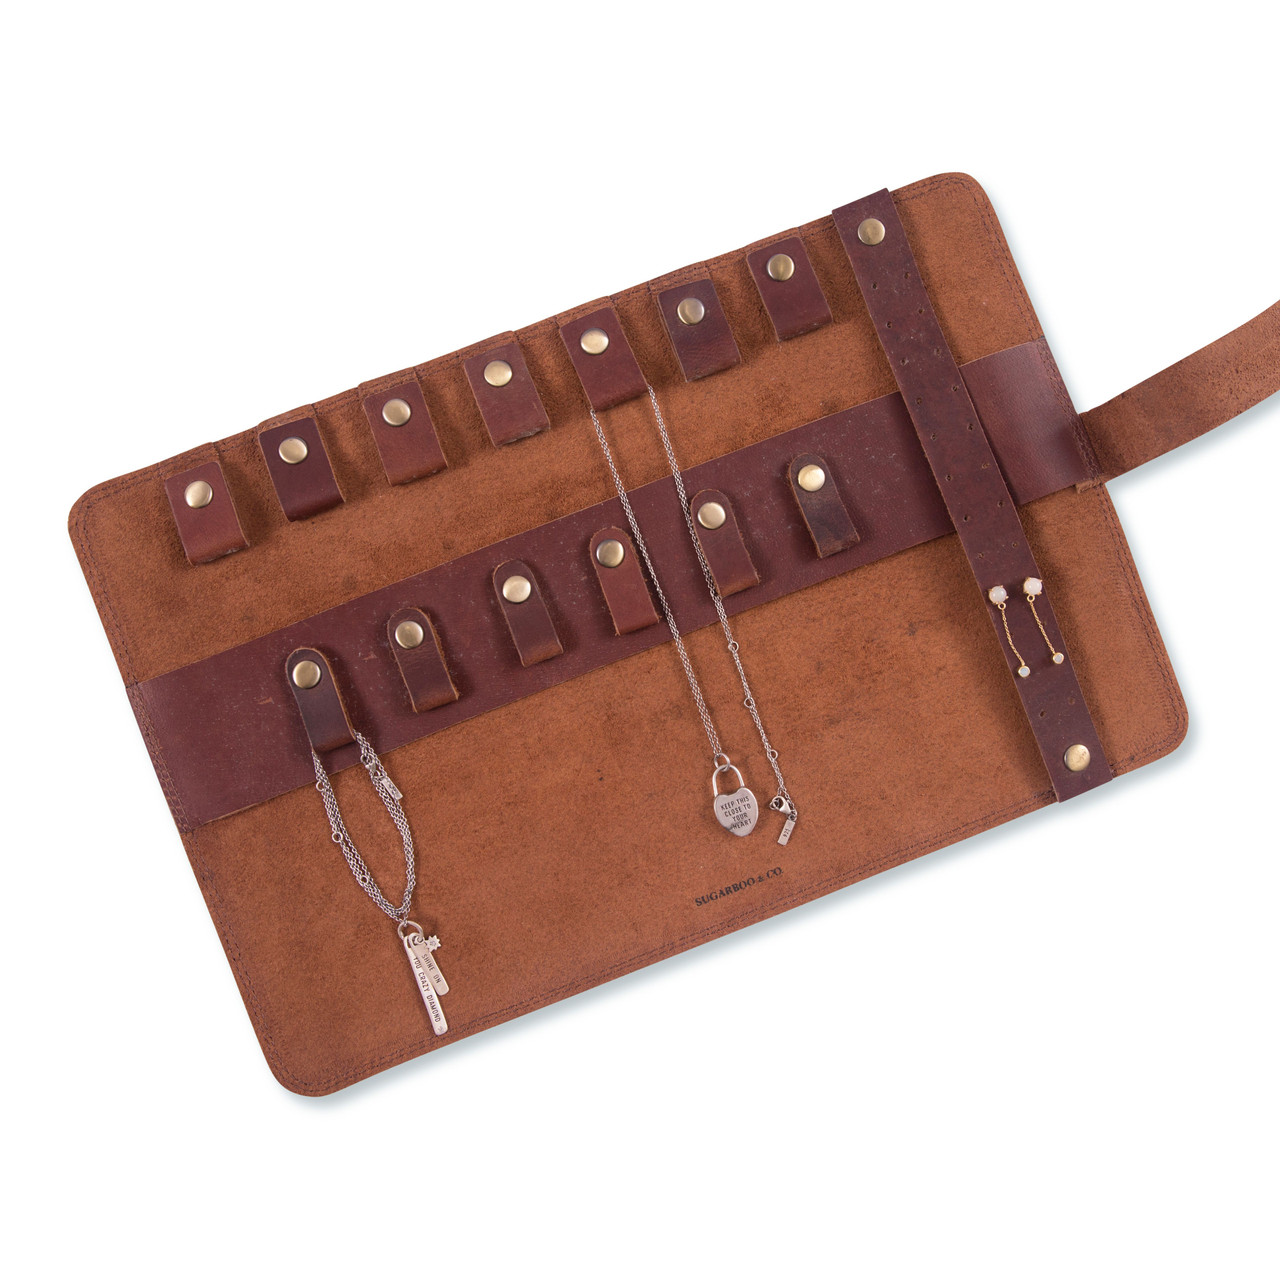 Leather Roll Up Pouch open with jewelry